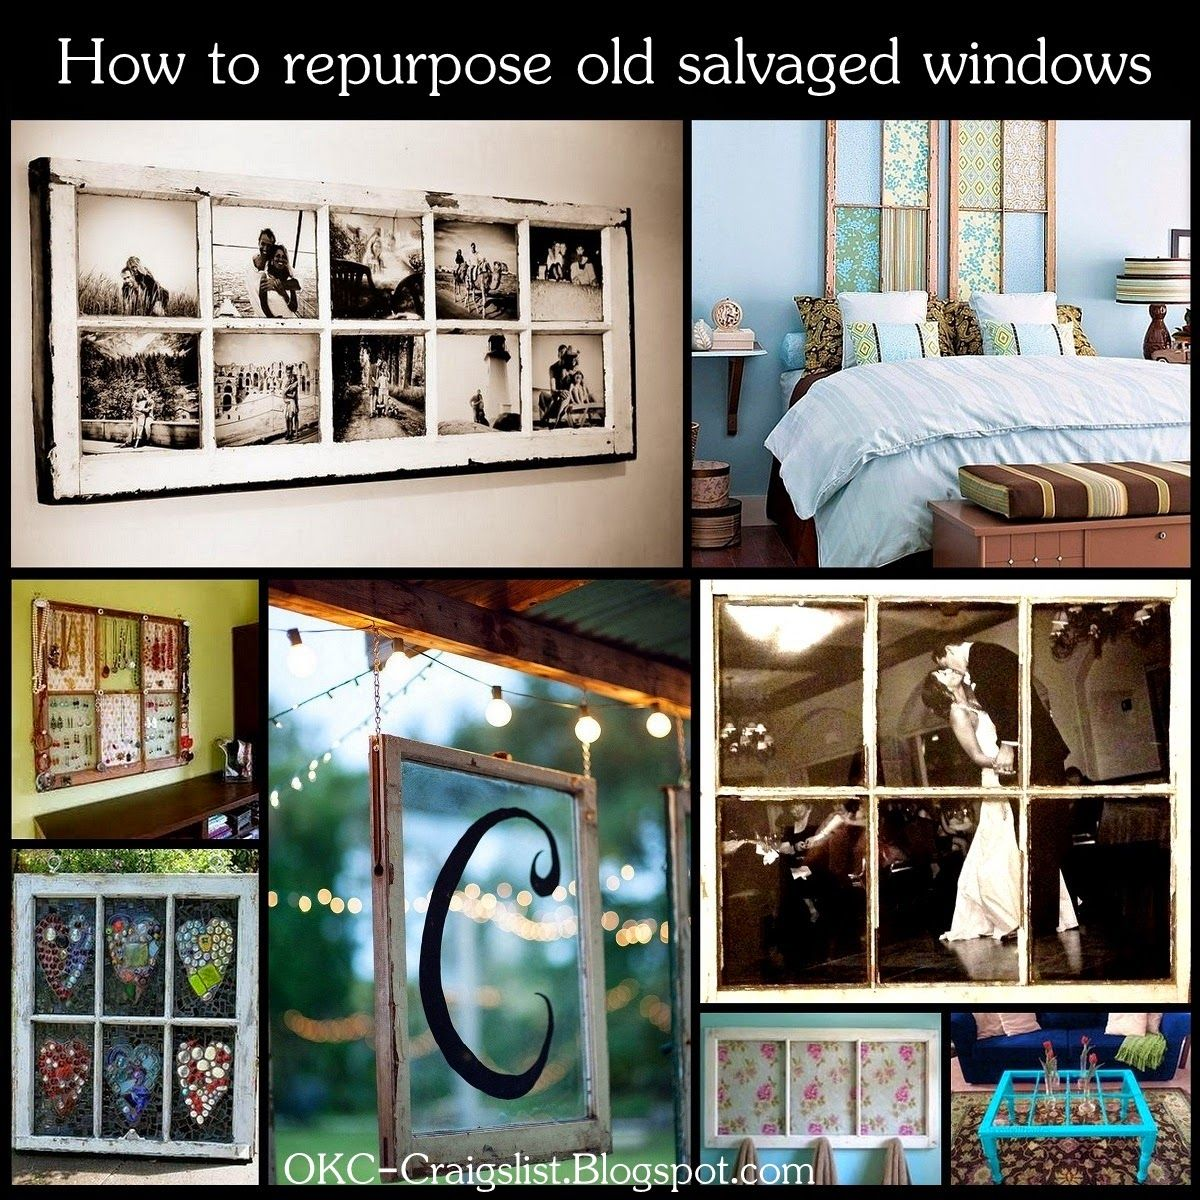 DIY: How To Repurpose Salvaged Old Windows As Home Decor